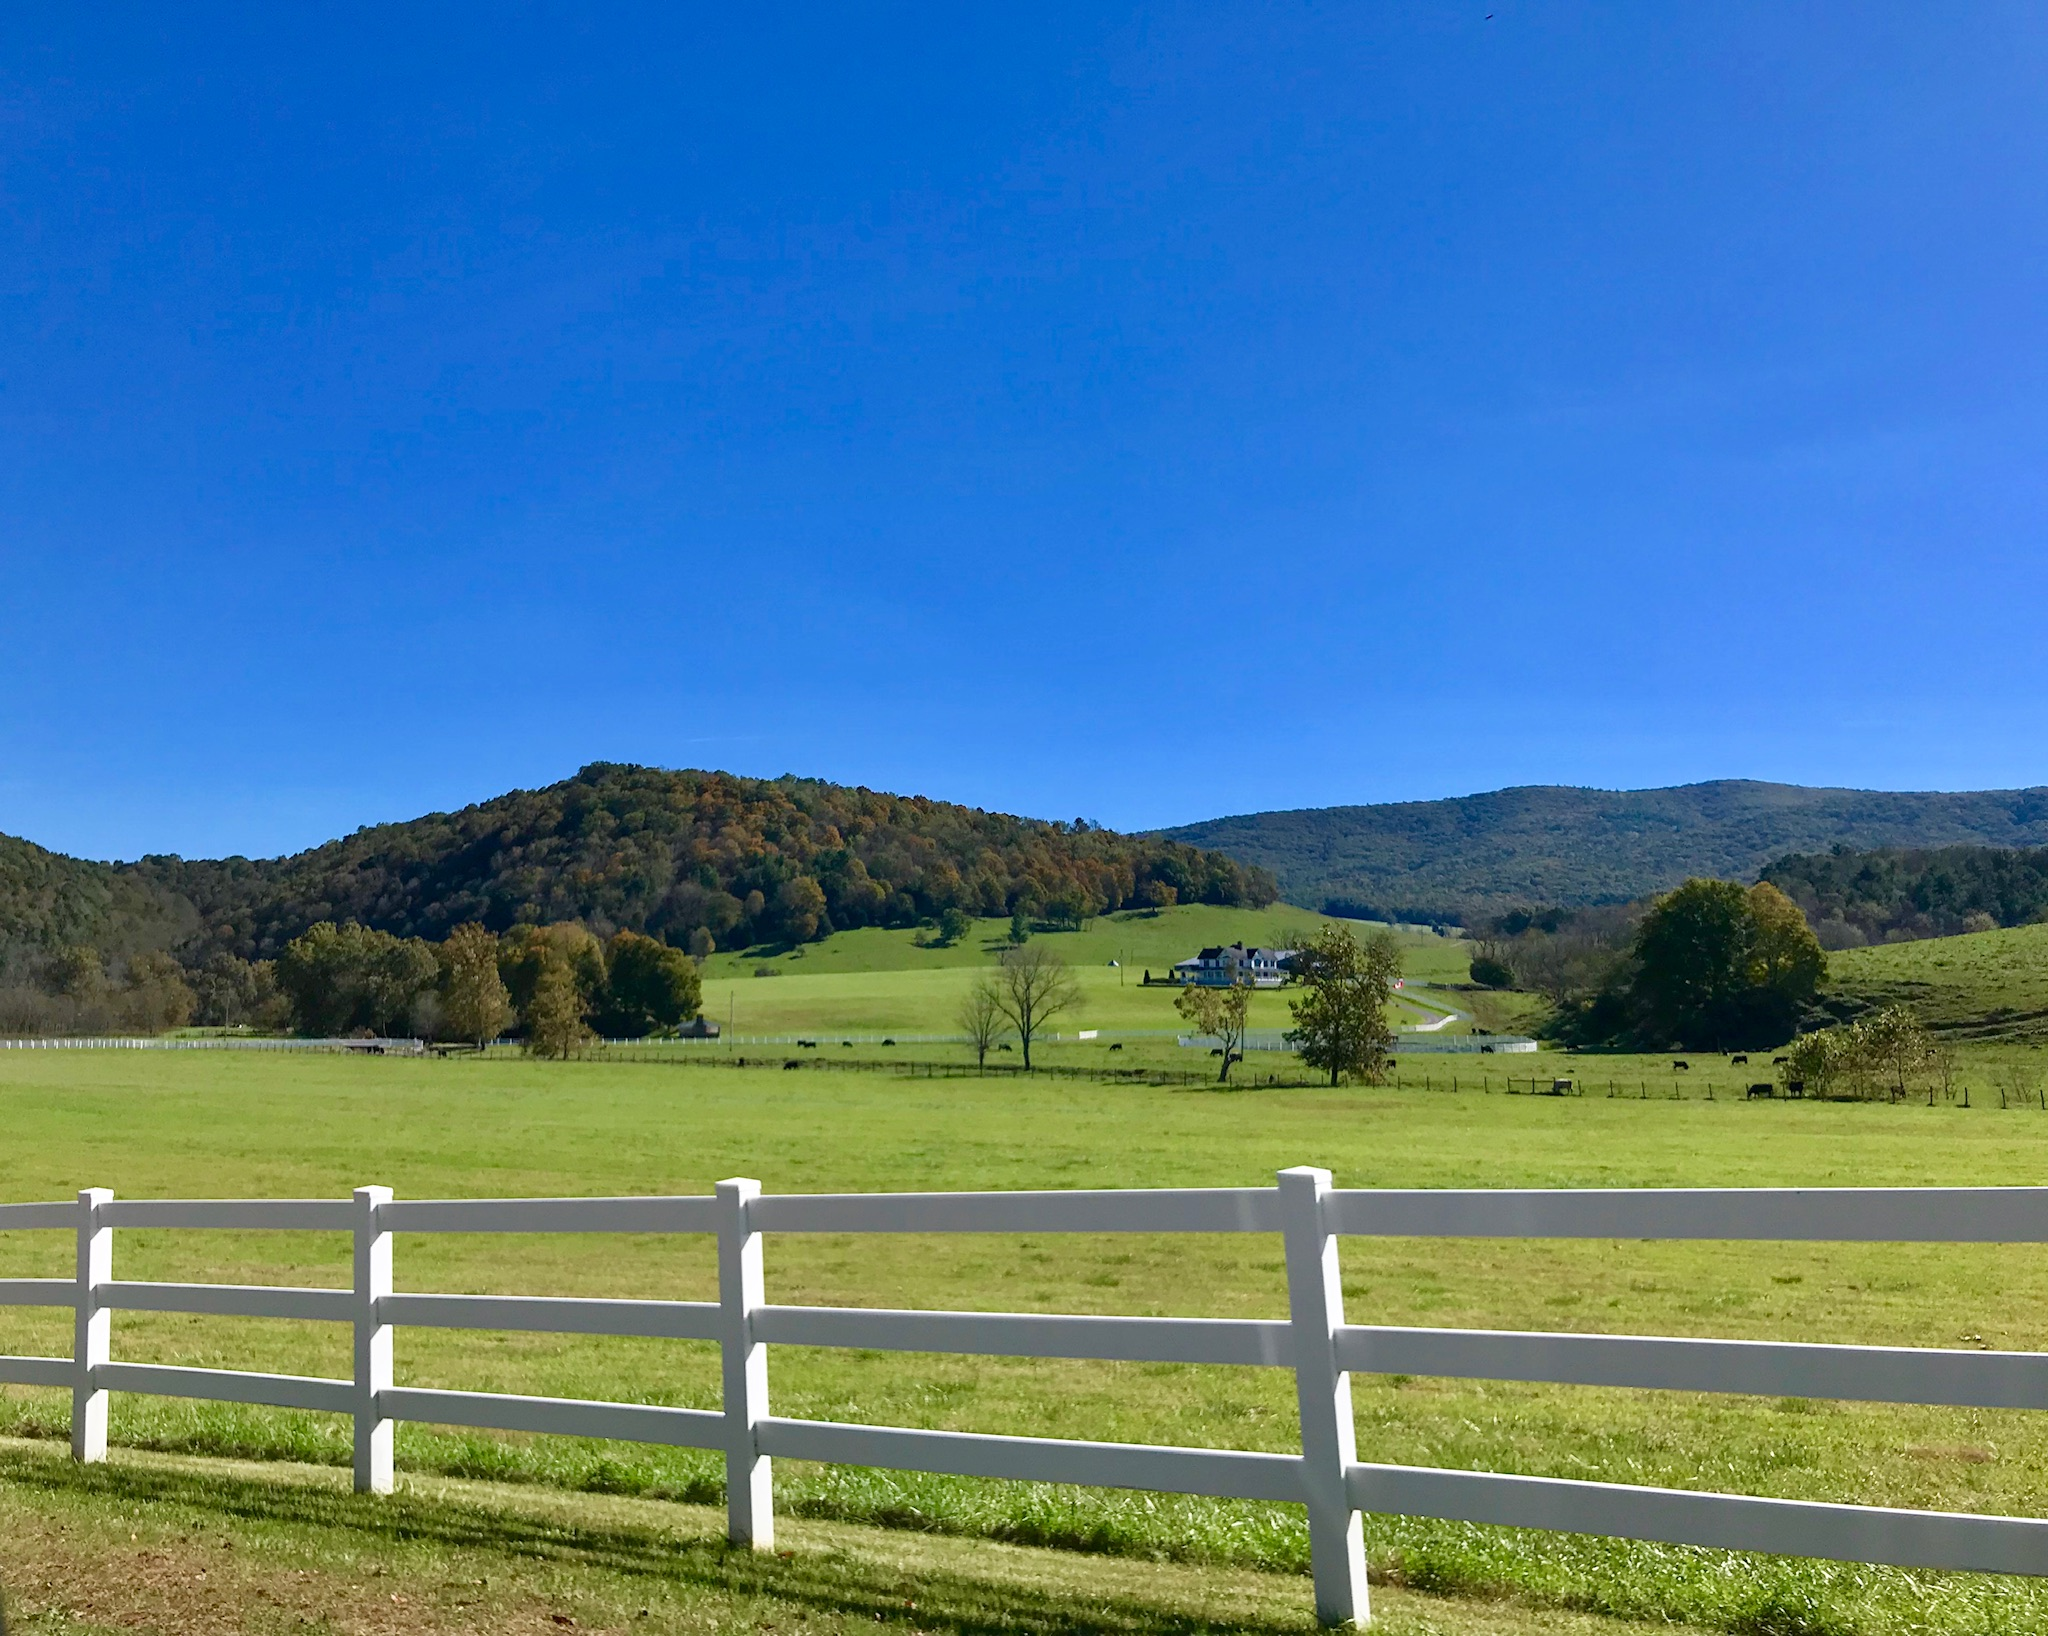 More beautiful scenery as we drove from Marion to Fries, VA.